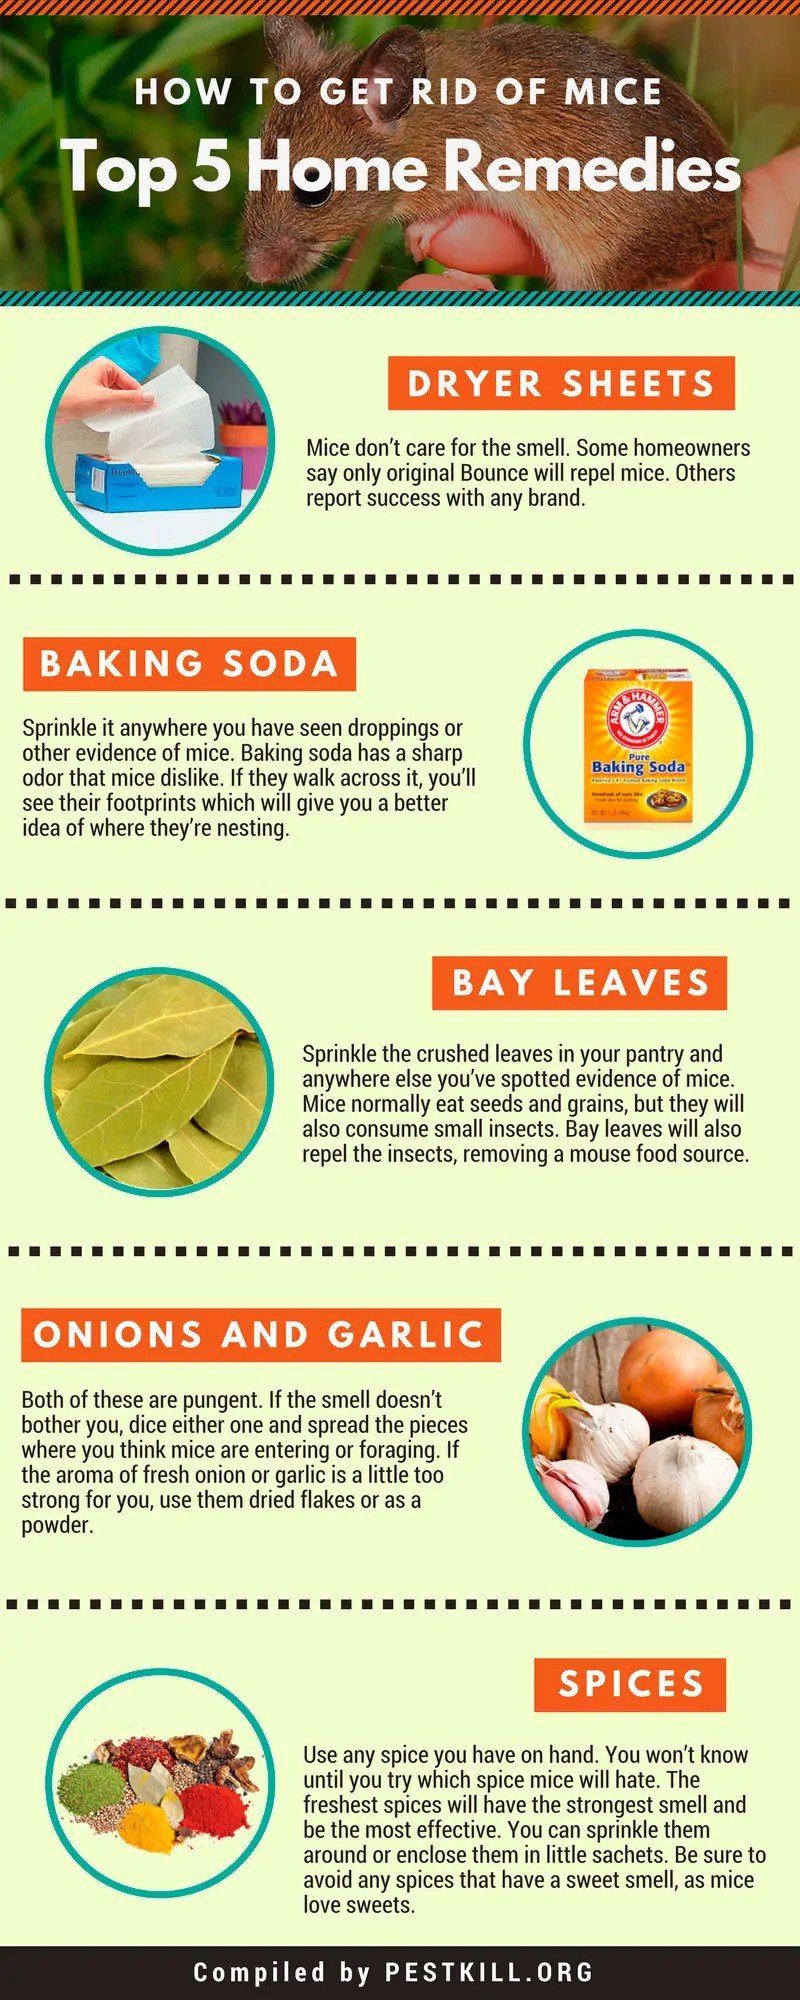 Infographic: Top 5 Home Remedies to Get Rid of Mice